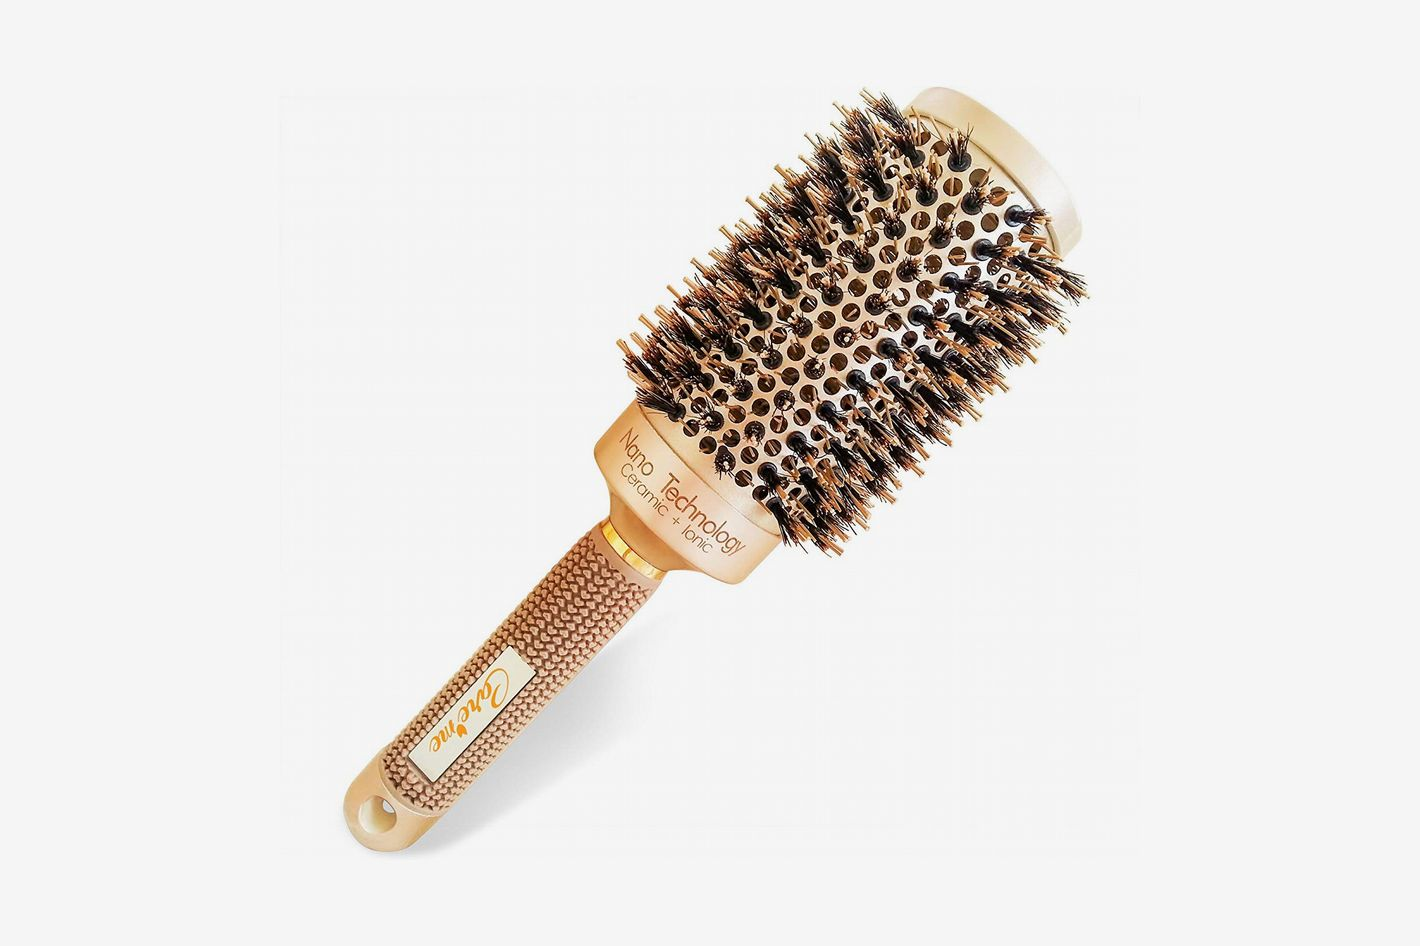 Care Me Round Hair Brush with Natural Boar Bristles